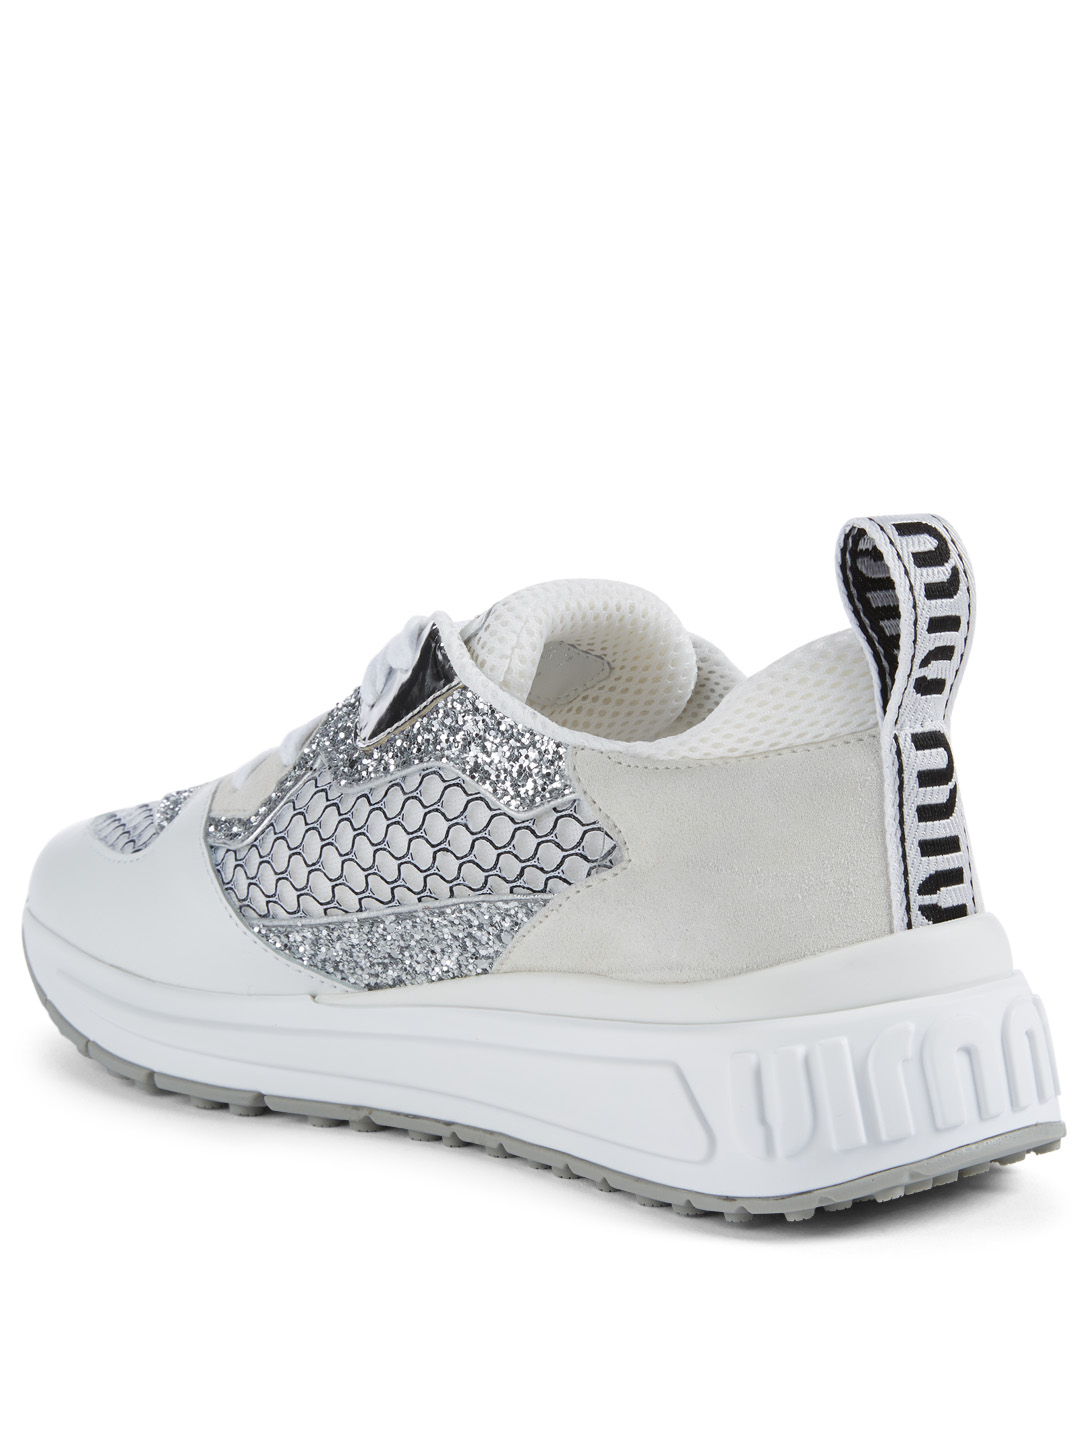 MIU MIU Leather and Glitter Sneakers Womens White